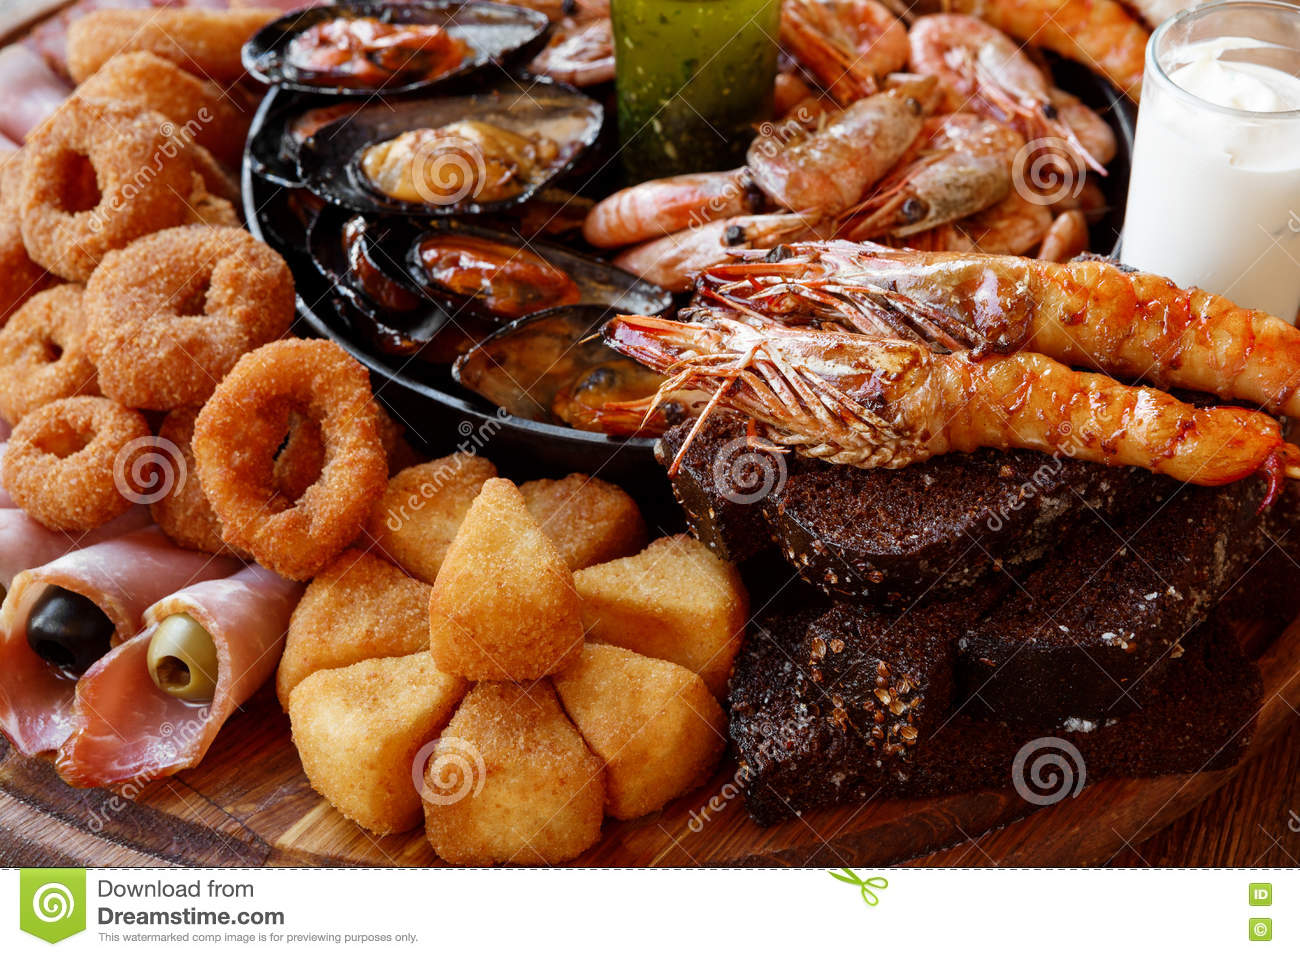 Fried Seafood Platter Closeup Stock Image Image Of Appetizer Holiday 82518981